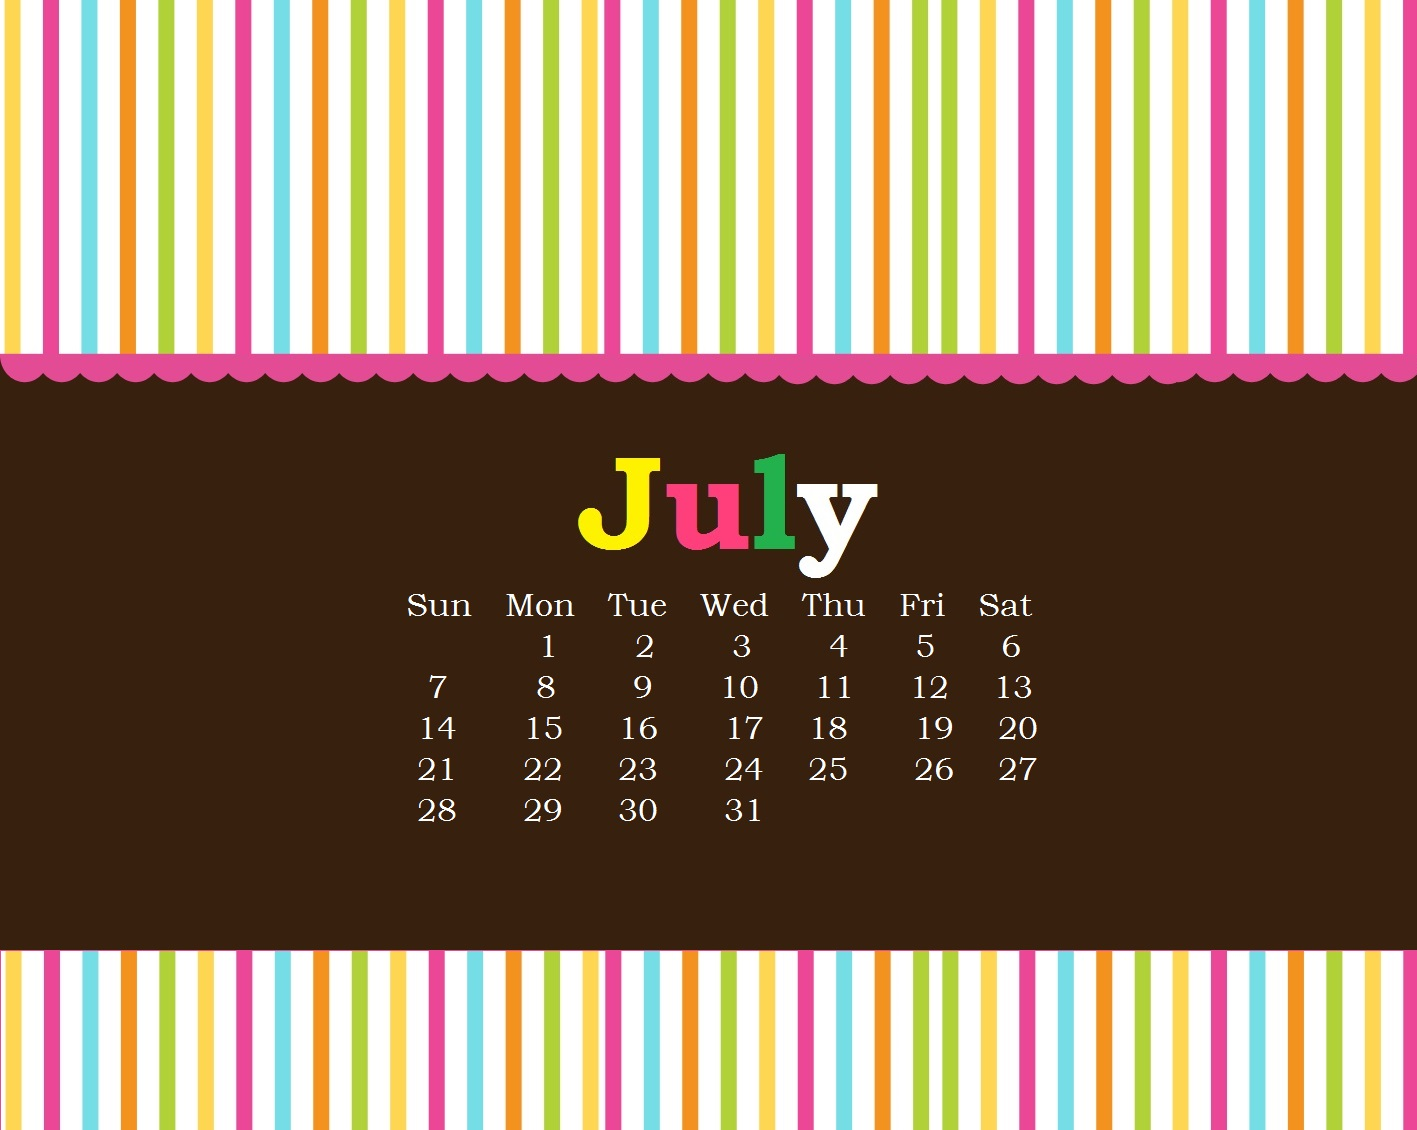 Beautiful July 2019 Calendar Wallpaper